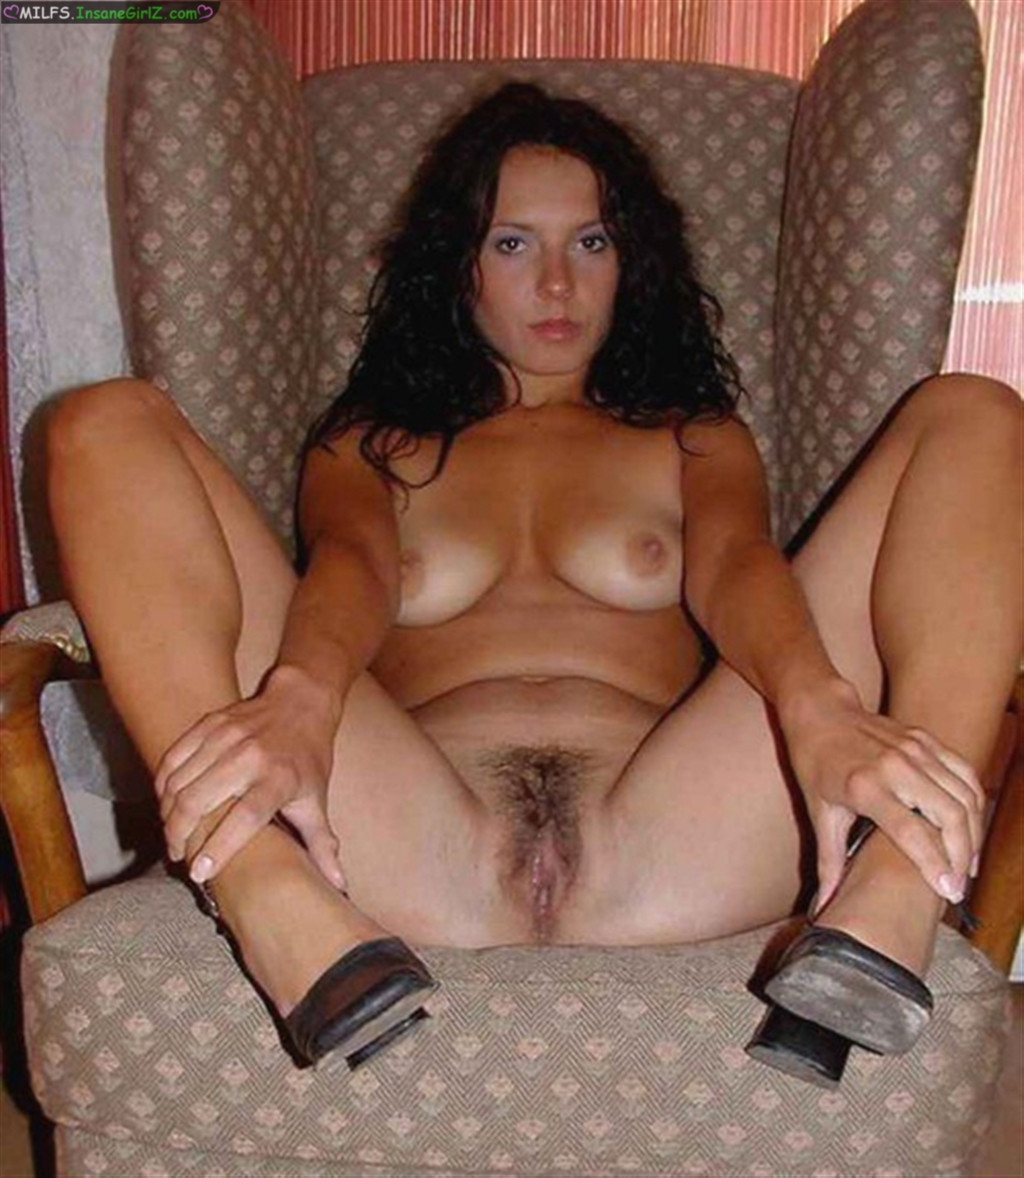 Cougar hot milf wife mature